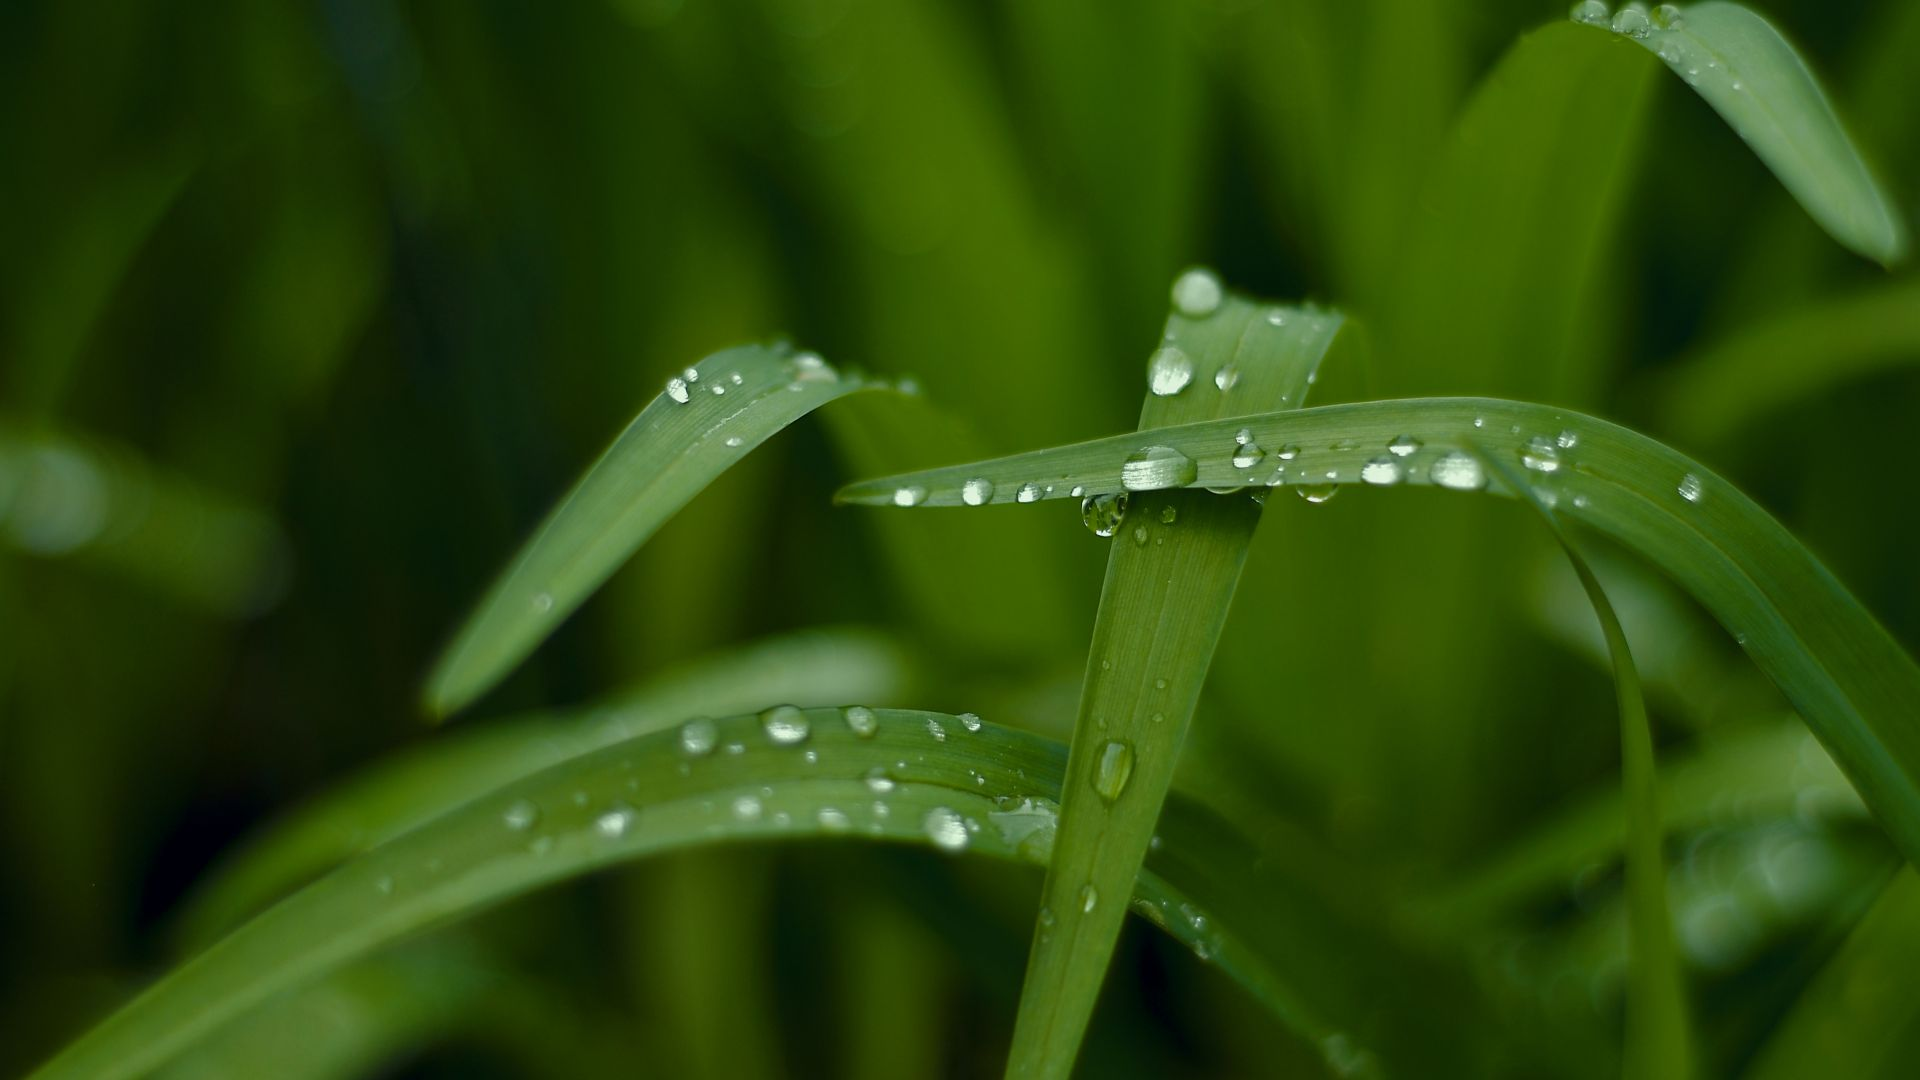 wallpaper grass, hd, 4k wallpaper, macro, drops, green, os #5483